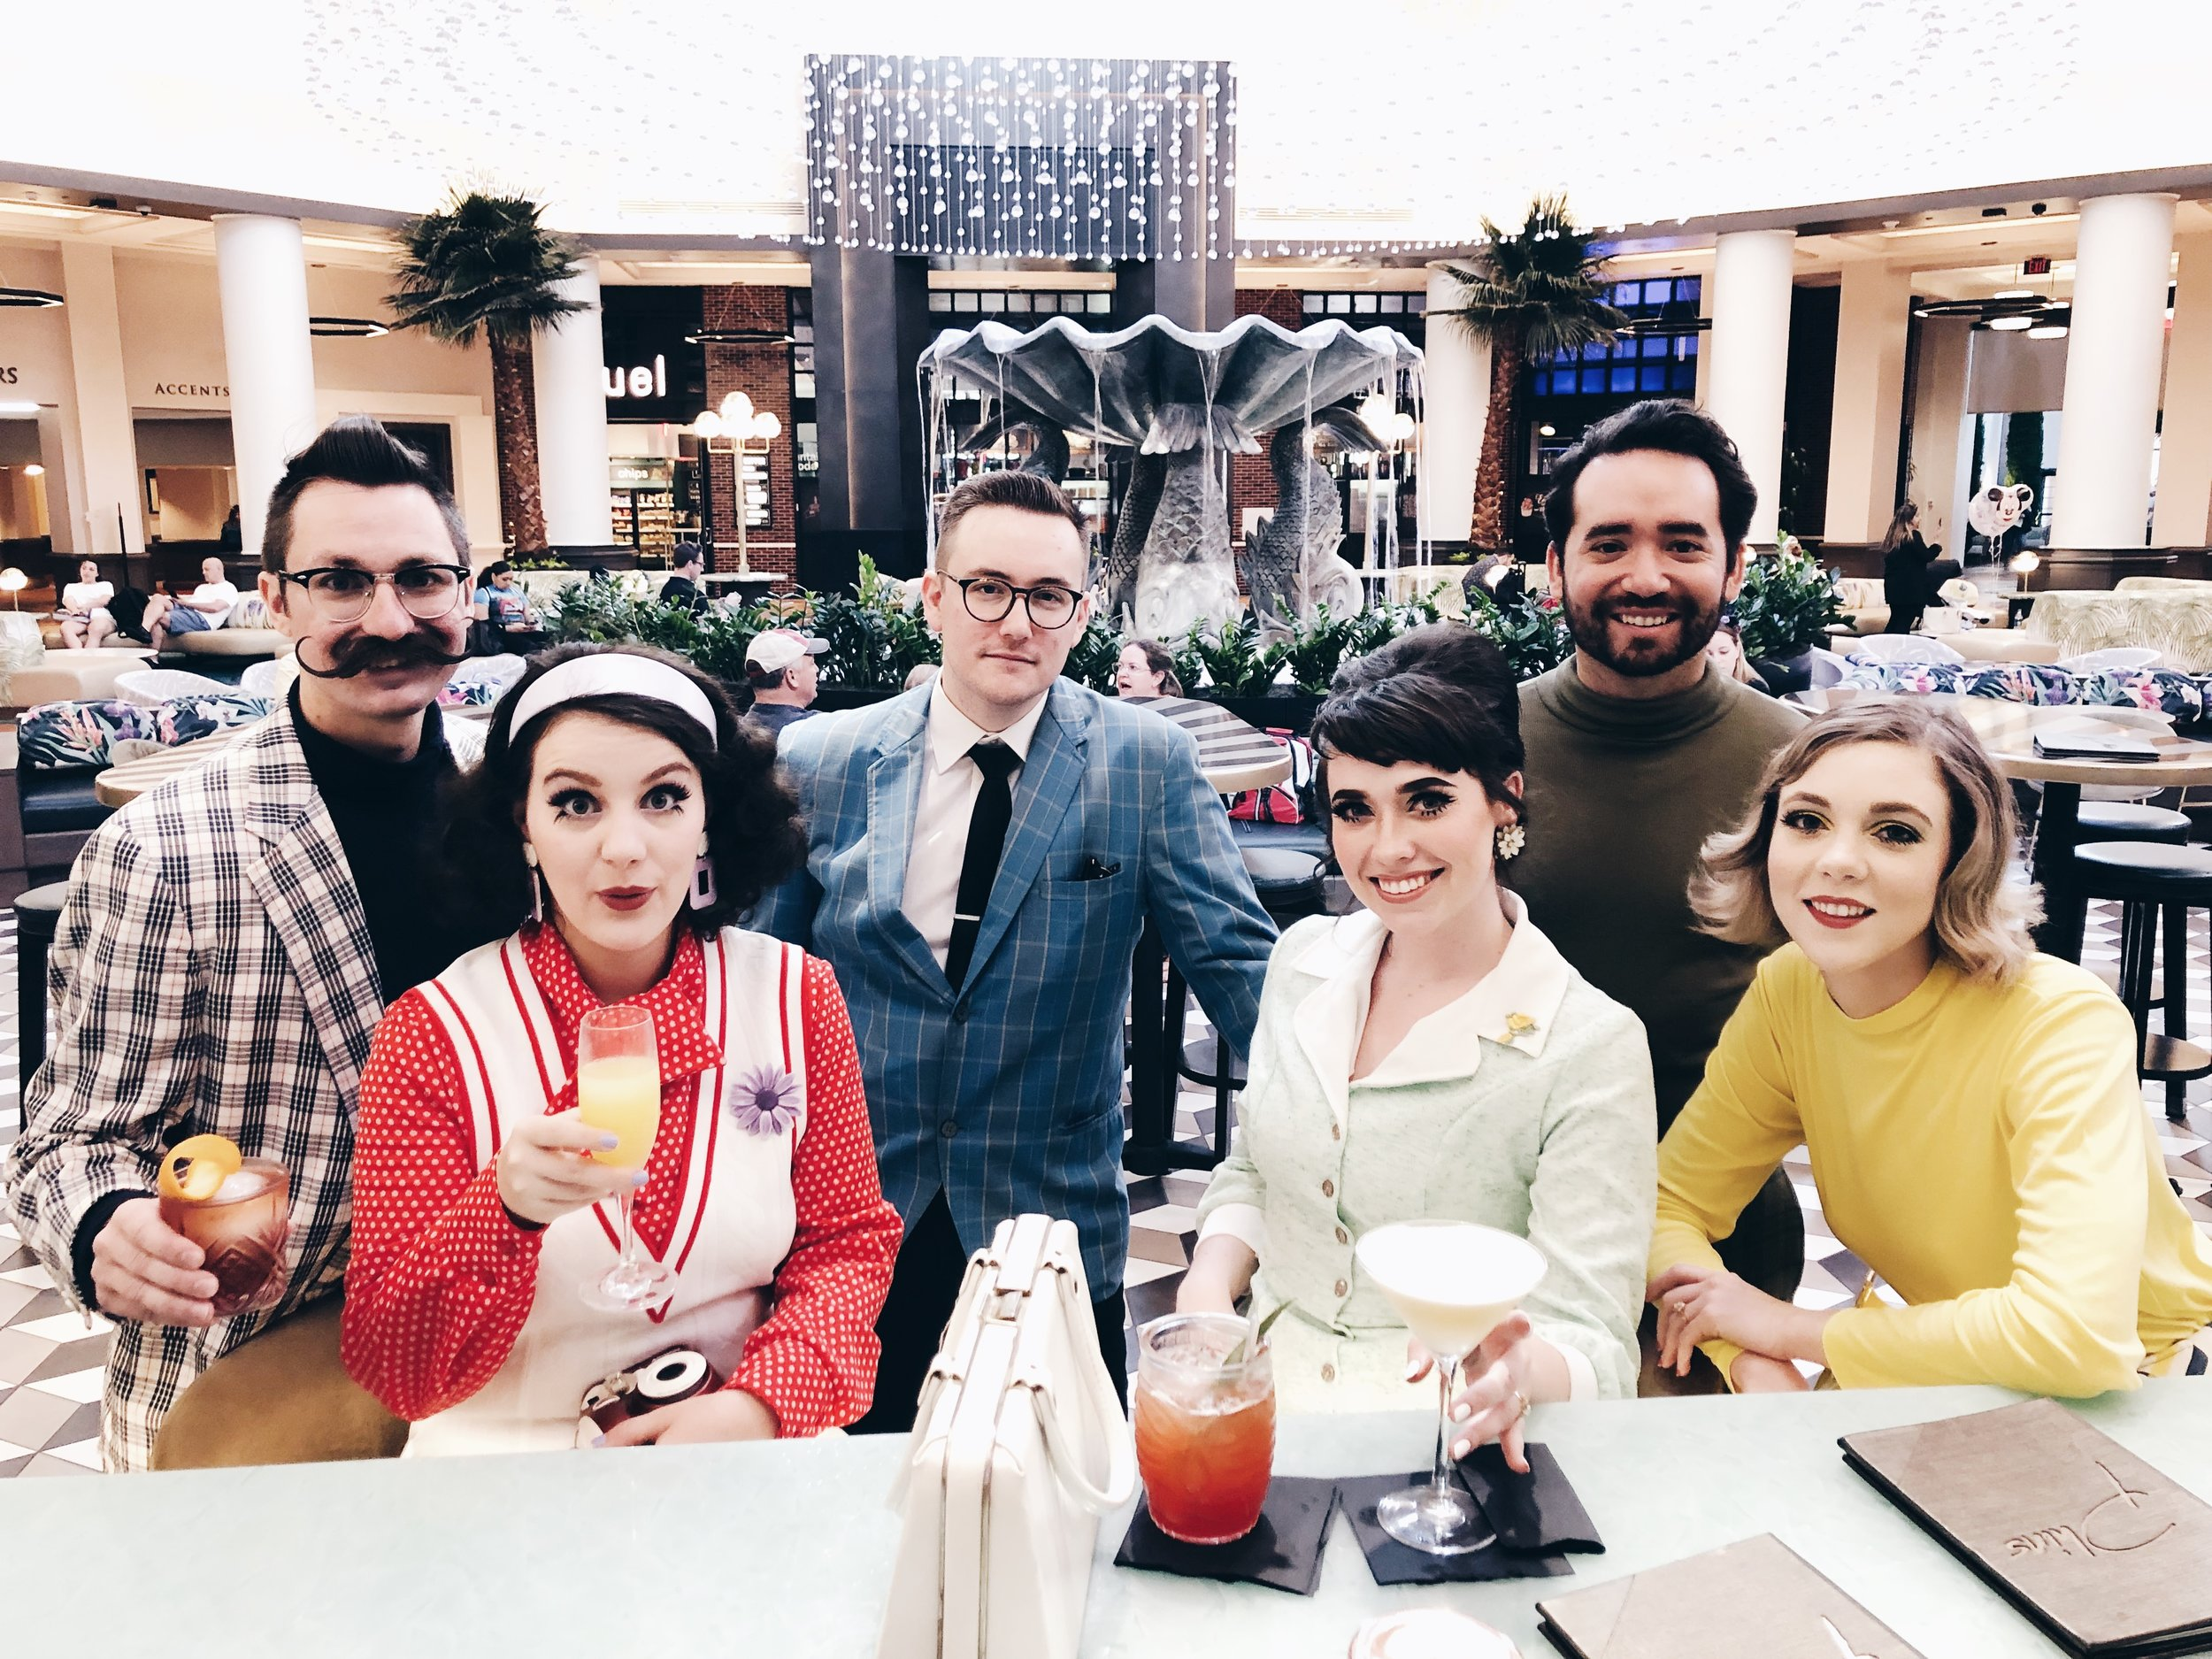 We stopped in at The Dolphin for a early afternoon cocktail before hitting up Epcot. The group! Be sure to follow these cuties for amazing content! I'm talking fashion, lifestyle, music & writing! From left to righ @mrspaigelavoie  (me!)  @mattplavoie  , @AustinVanWie  , @SamanthaVanWie , @suitandtype ,  @withdropsofjupiter